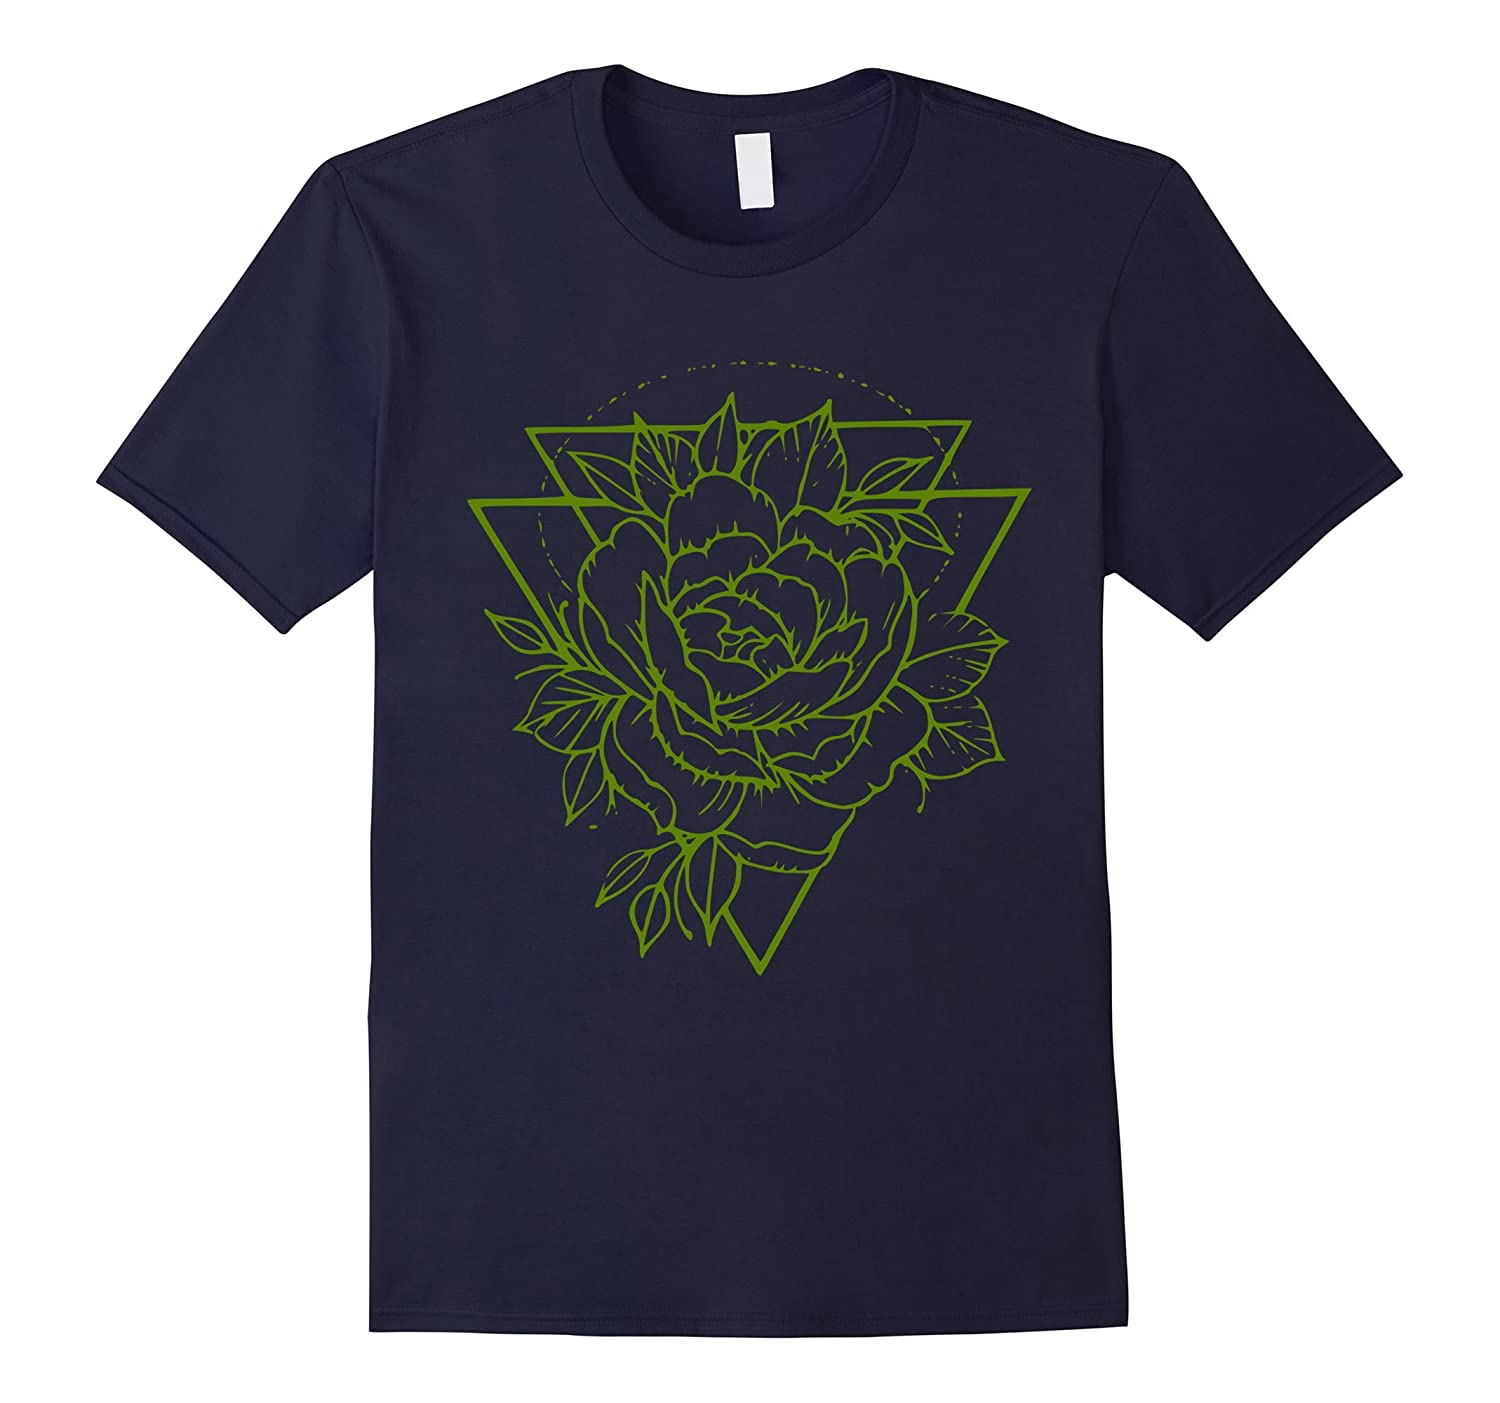 Rose / Leaves / Triangle / Geometric T-Shirt-FL